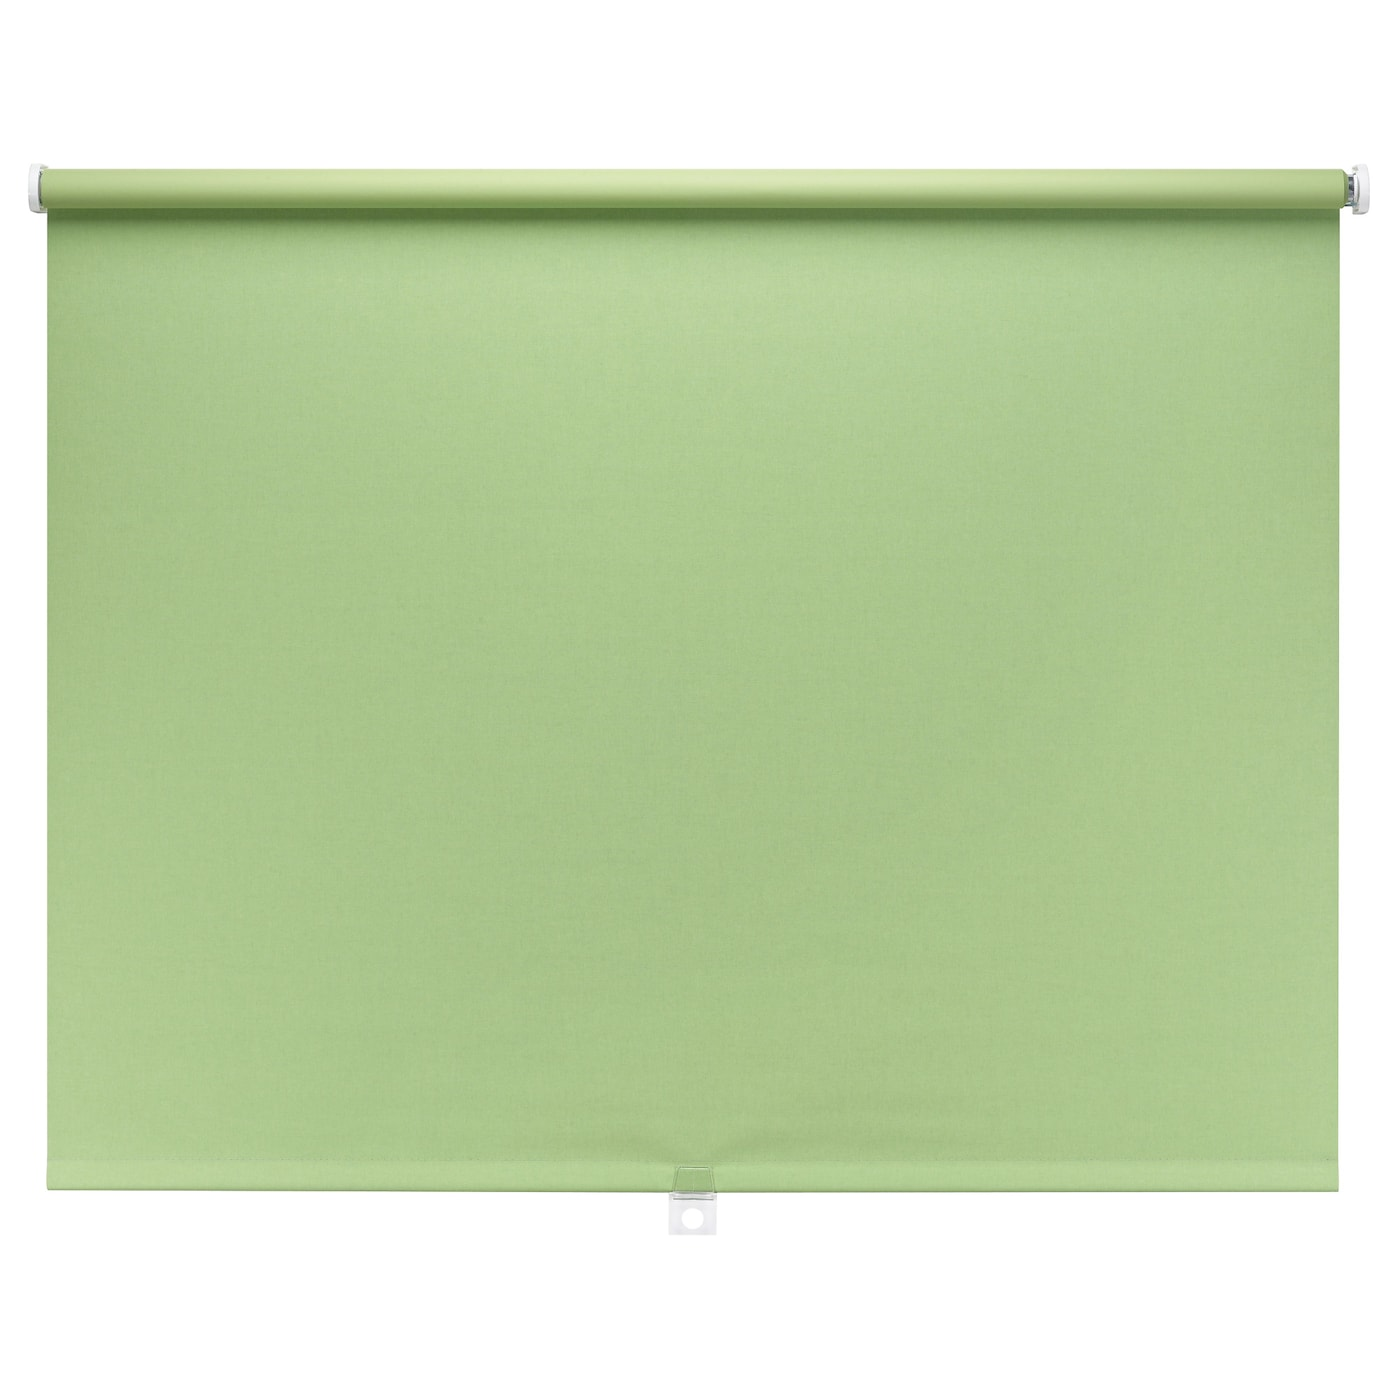 diskodans block out roller blind green 100x195 cm ikea. Black Bedroom Furniture Sets. Home Design Ideas